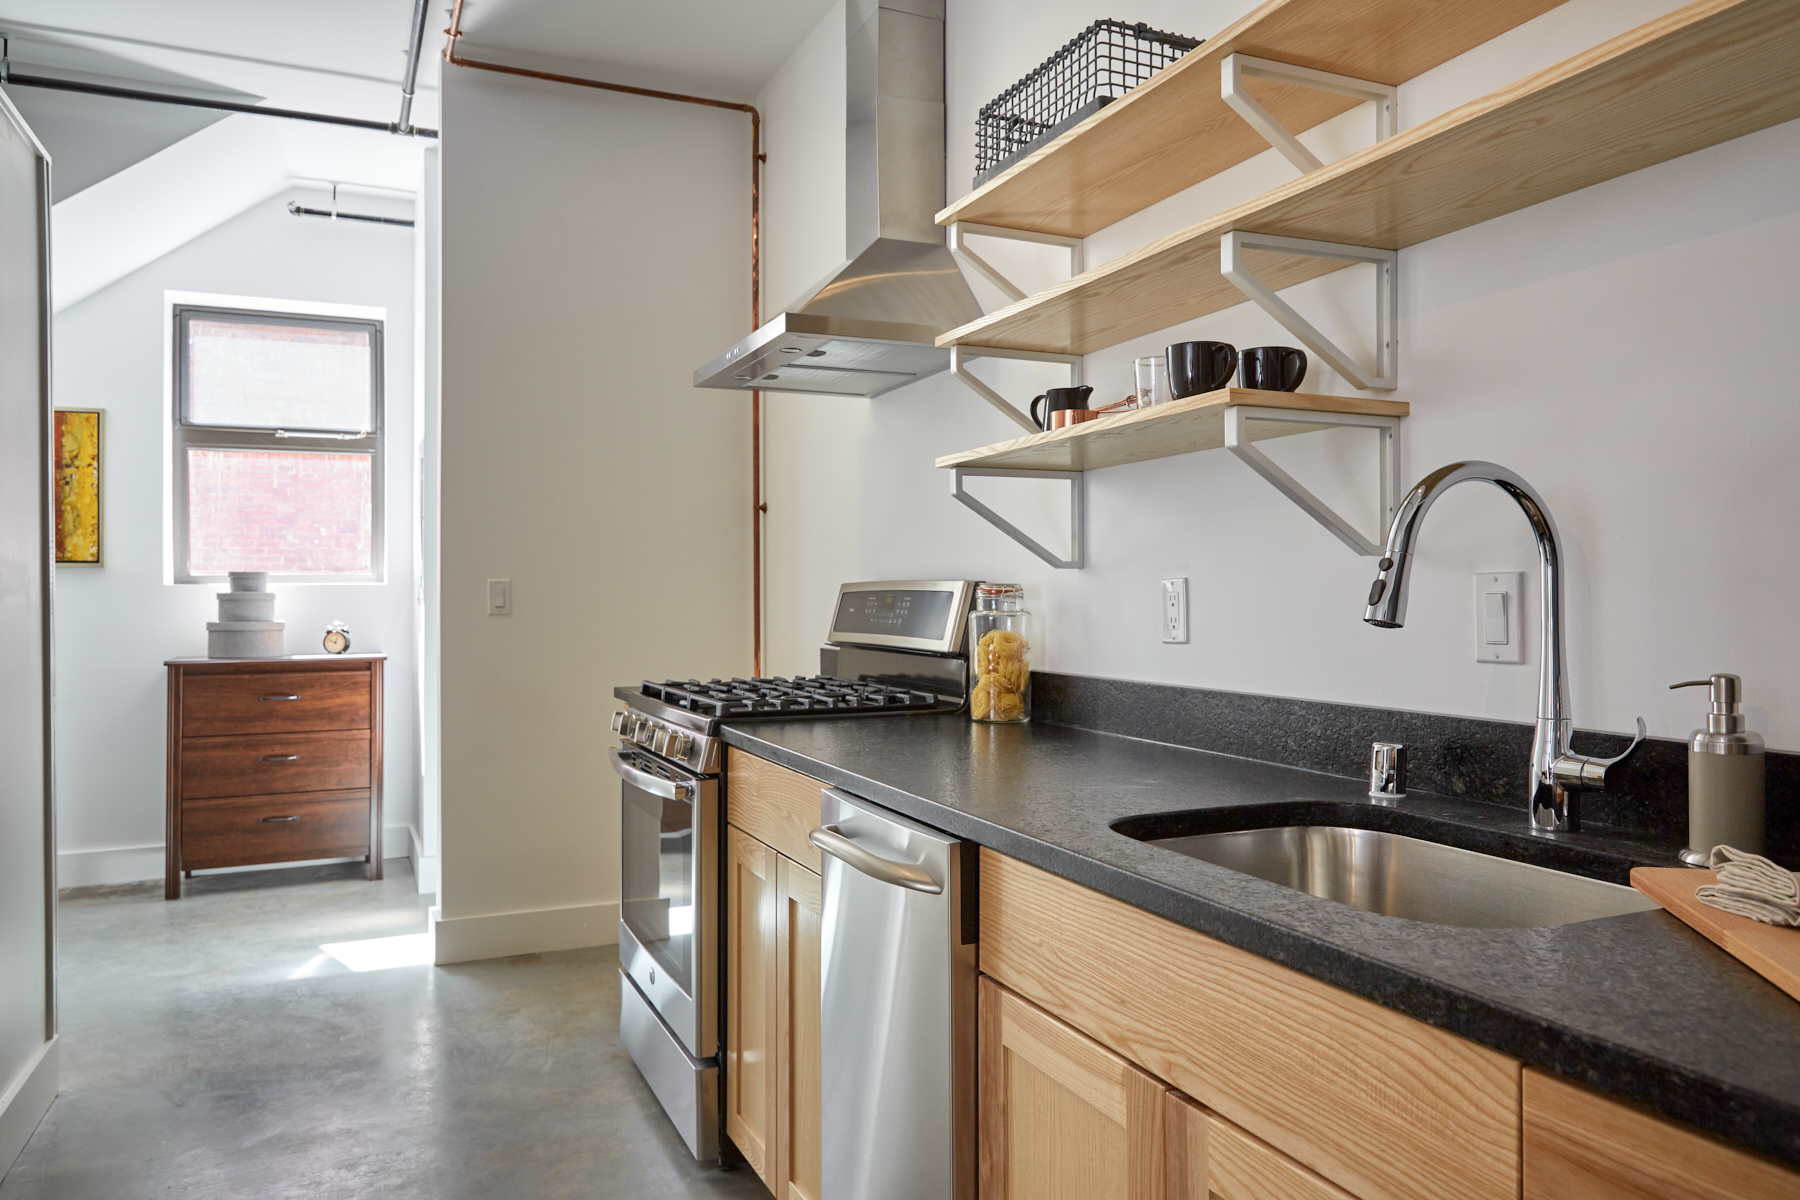 EastEndLofts_March2017-16.jpg